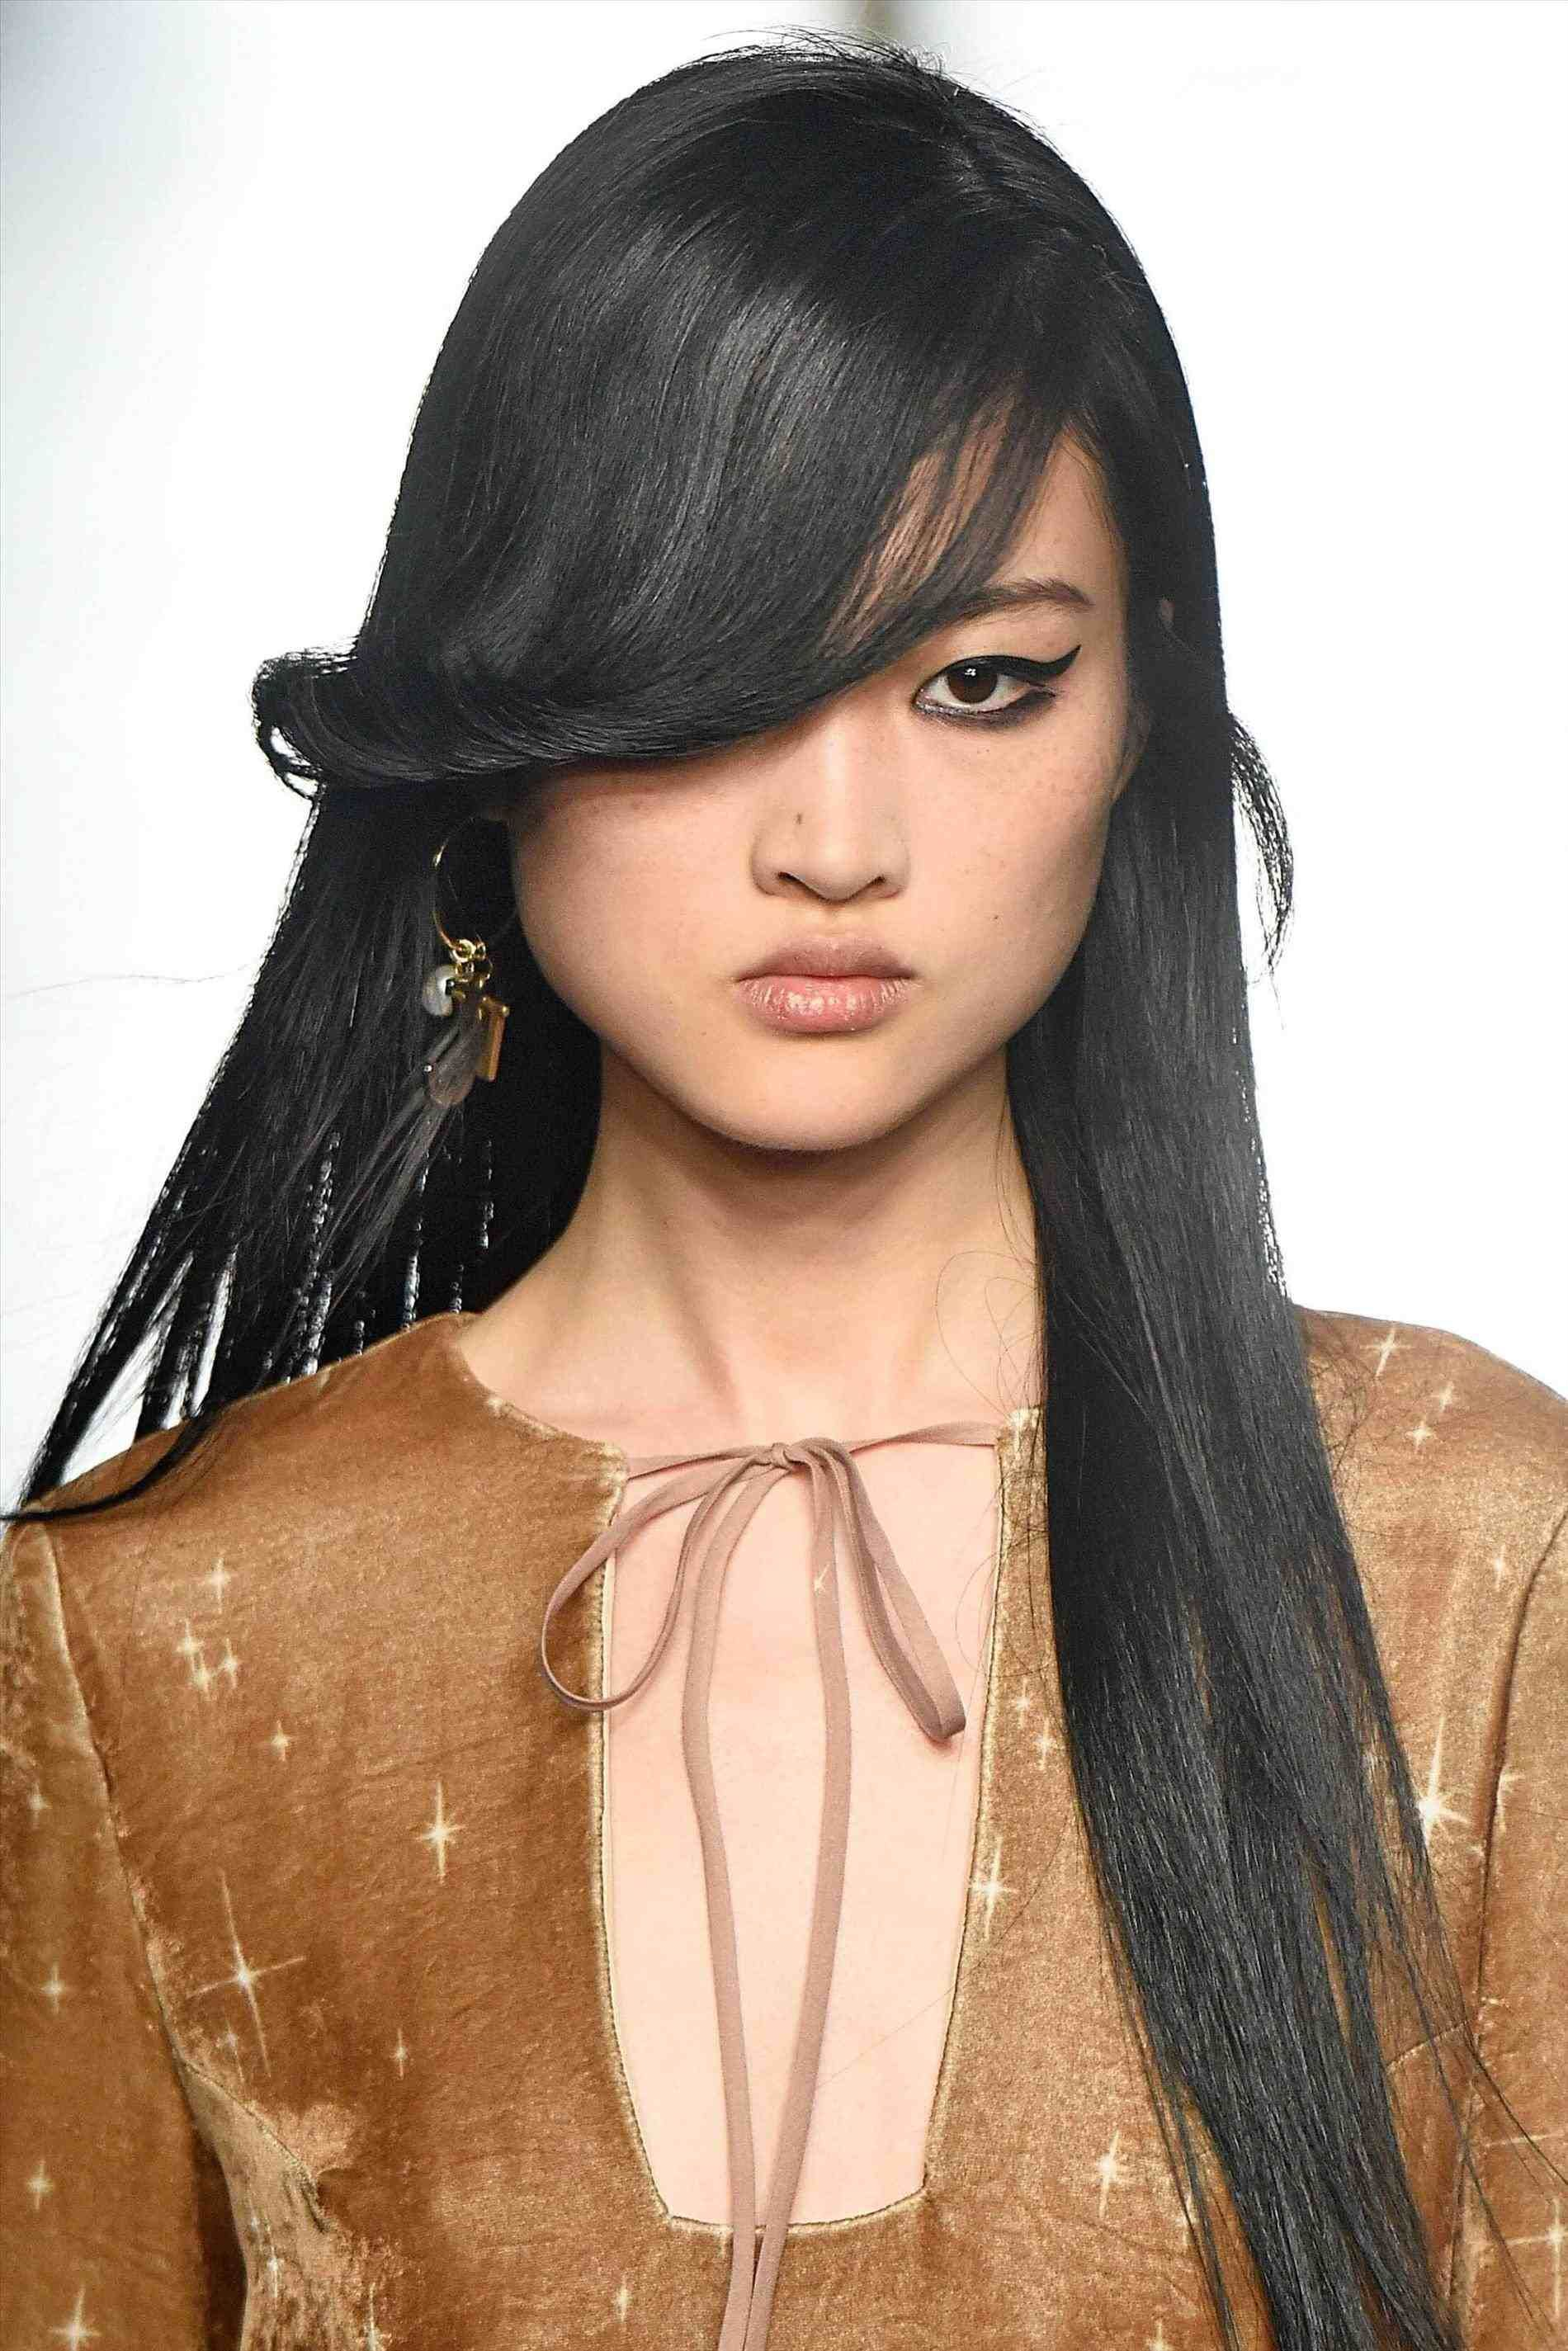 Front Haircut Style For Round Face Hair Stylist And Models